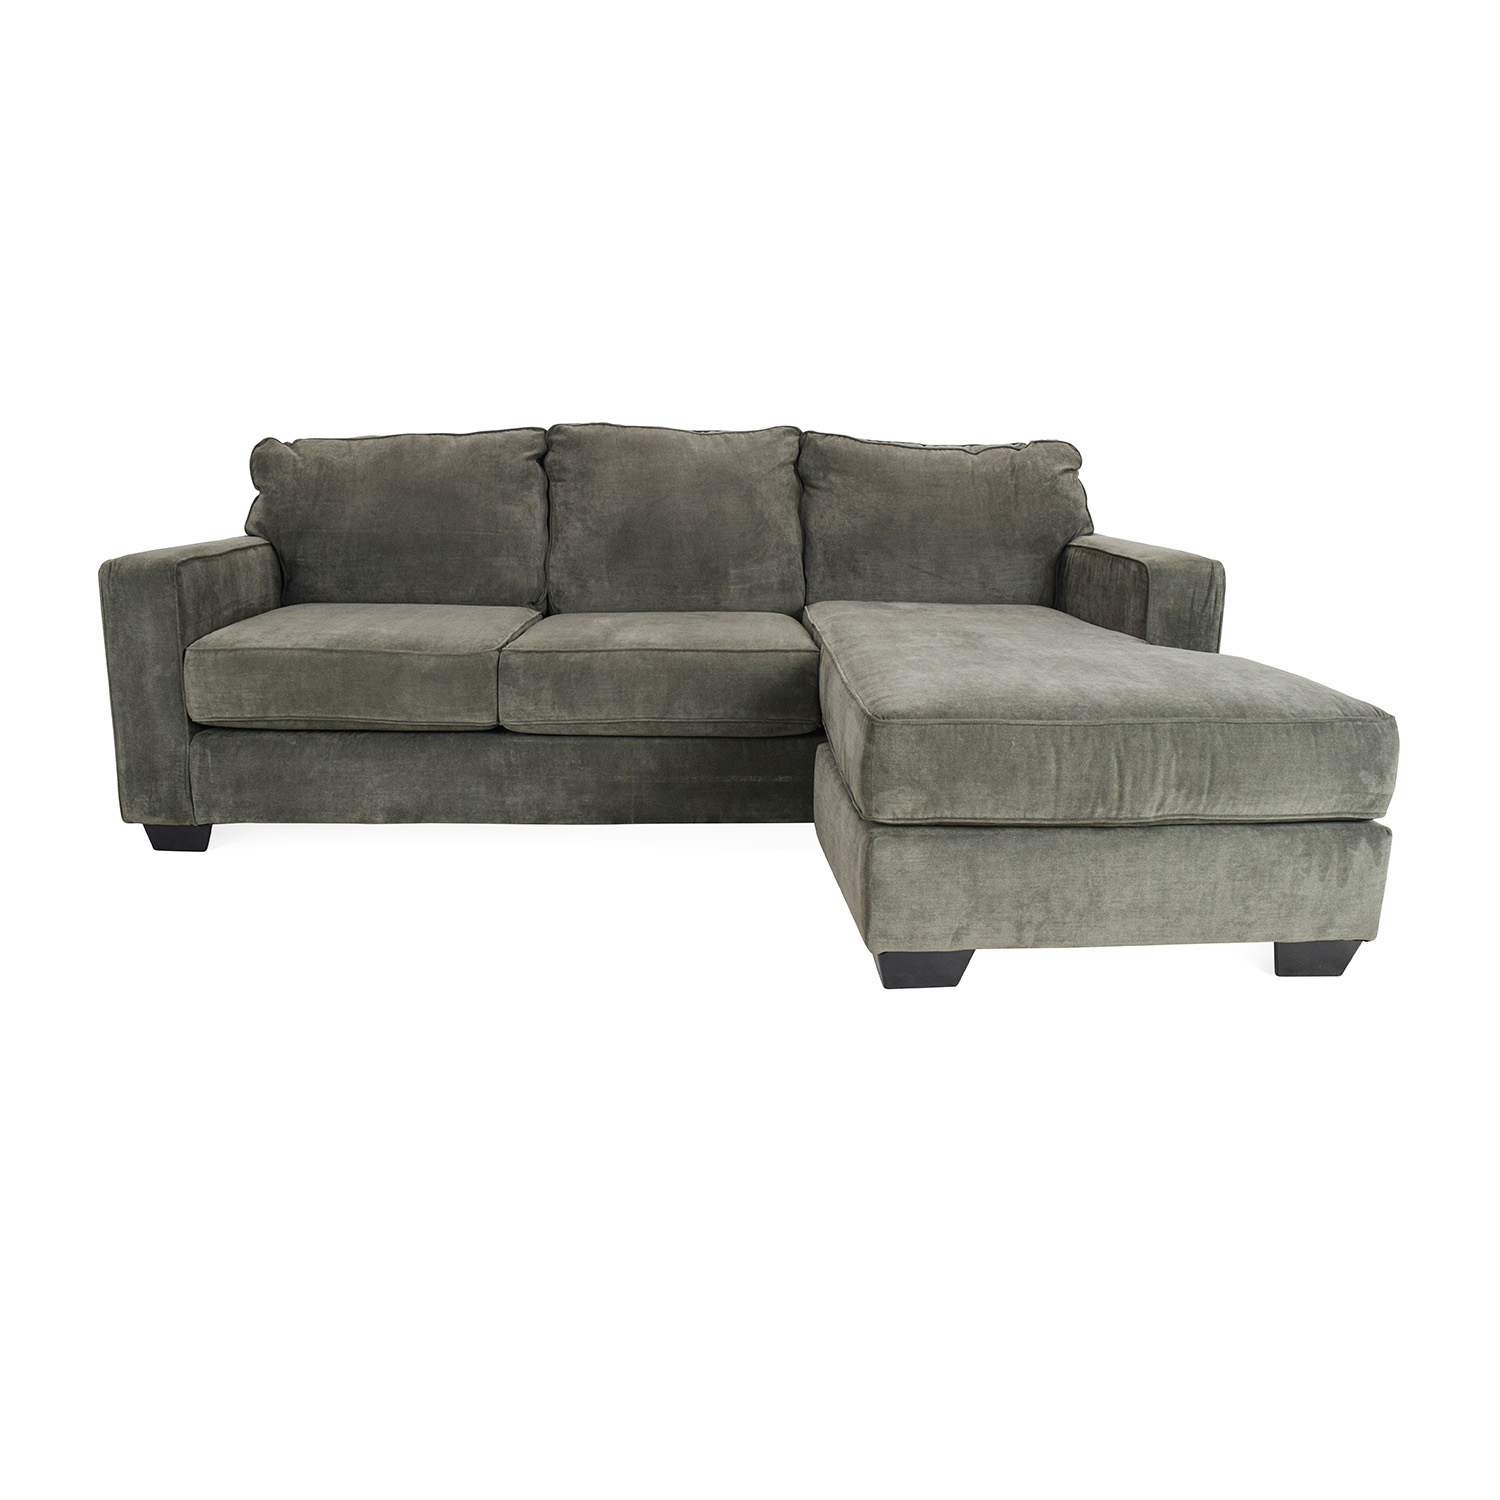 Jennifer Convertibles Sectional Sofa Jennifer Convertibles ...  sc 1 st  Furnishare : jennifer leather sectional - Sectionals, Sofas & Couches